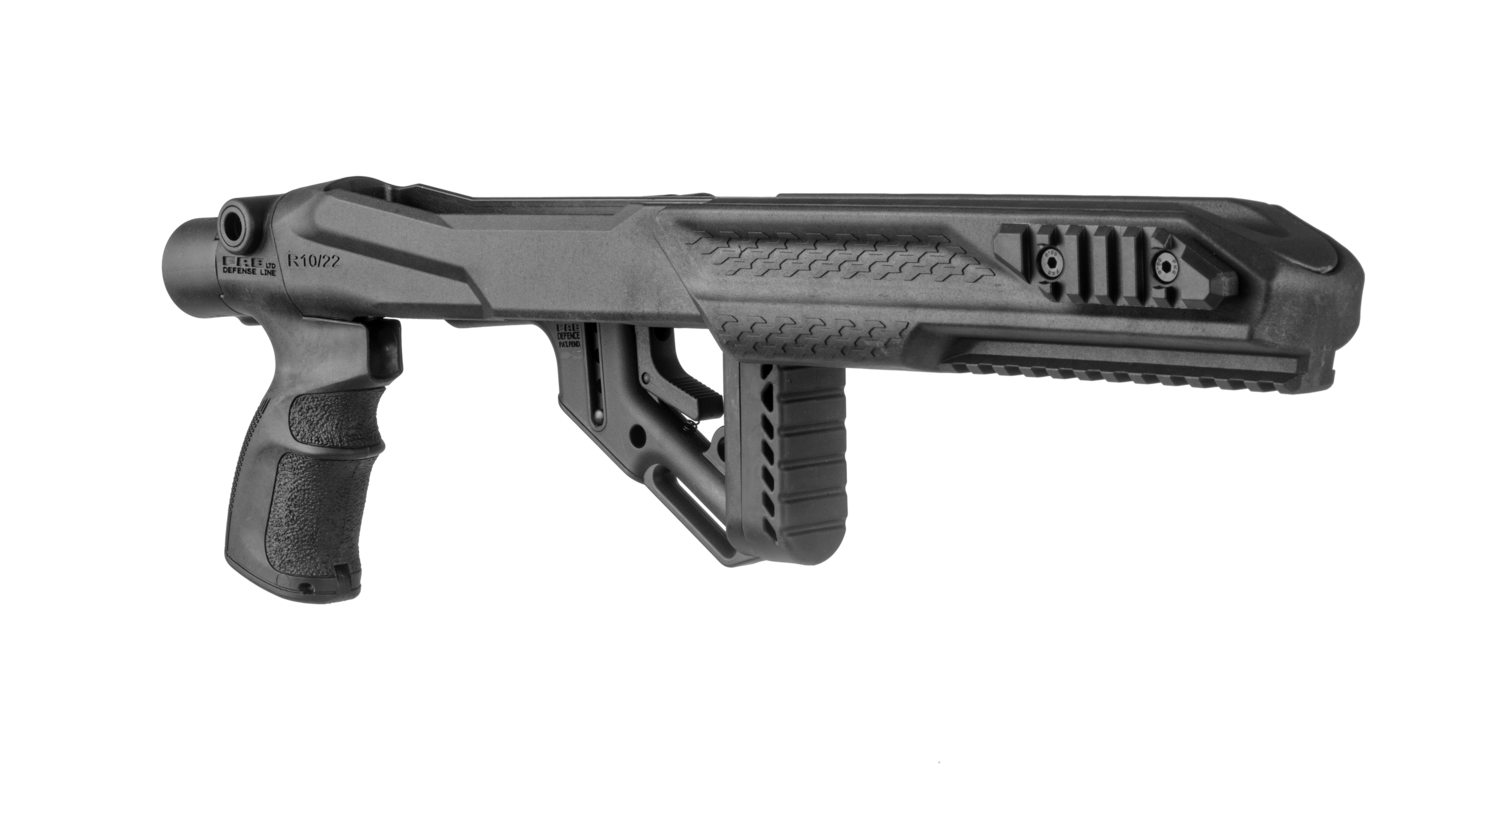 Ruger 1022 Chassis